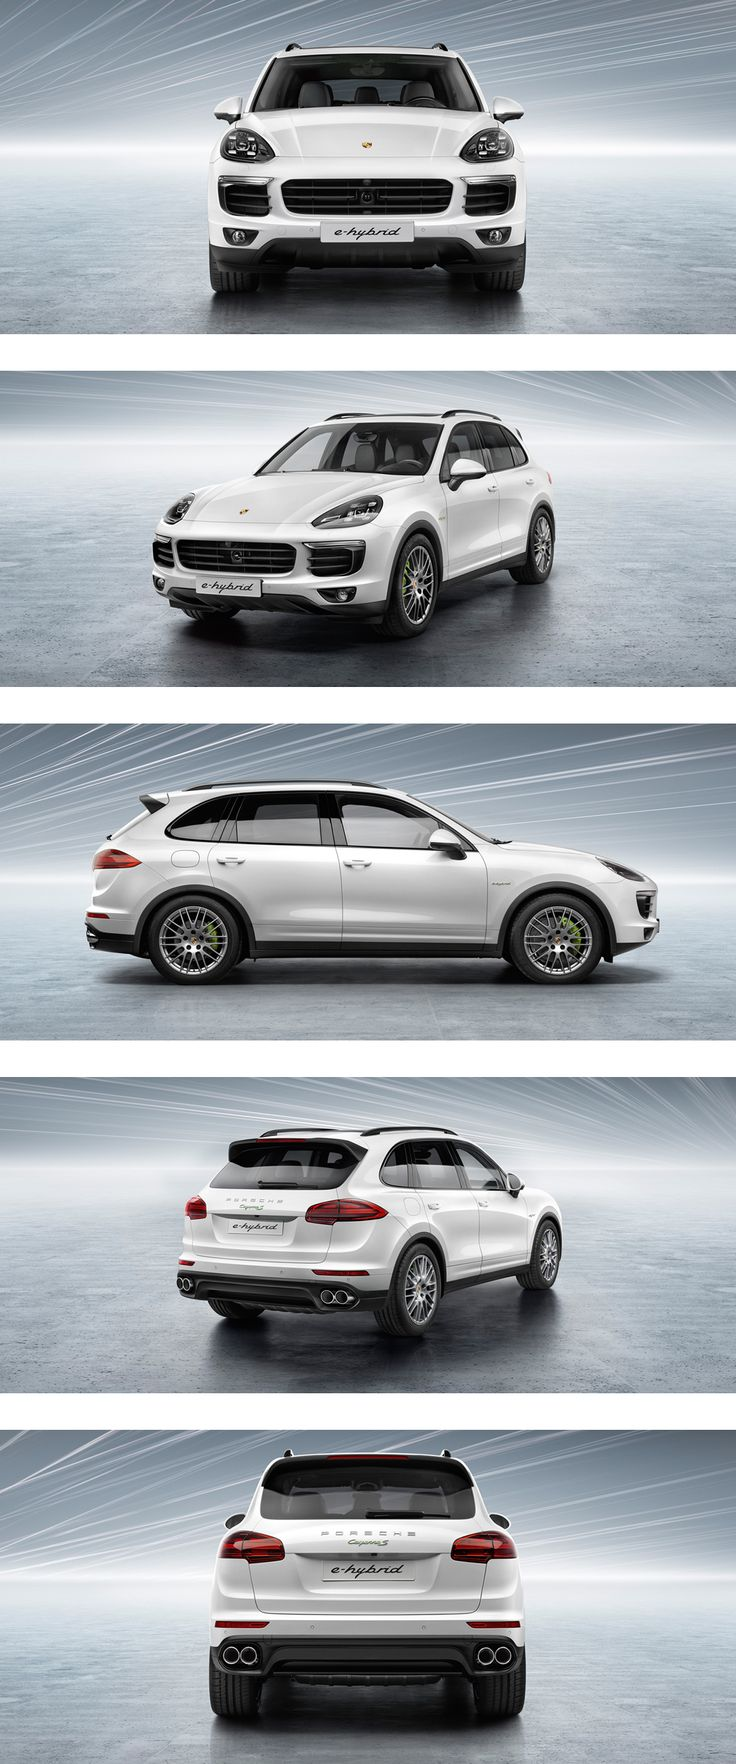 OUR SOLUTION FOR THE FUTURE &8211; SIMPLY ELECTRIFYING. THE NEW PORSCHECAYEN